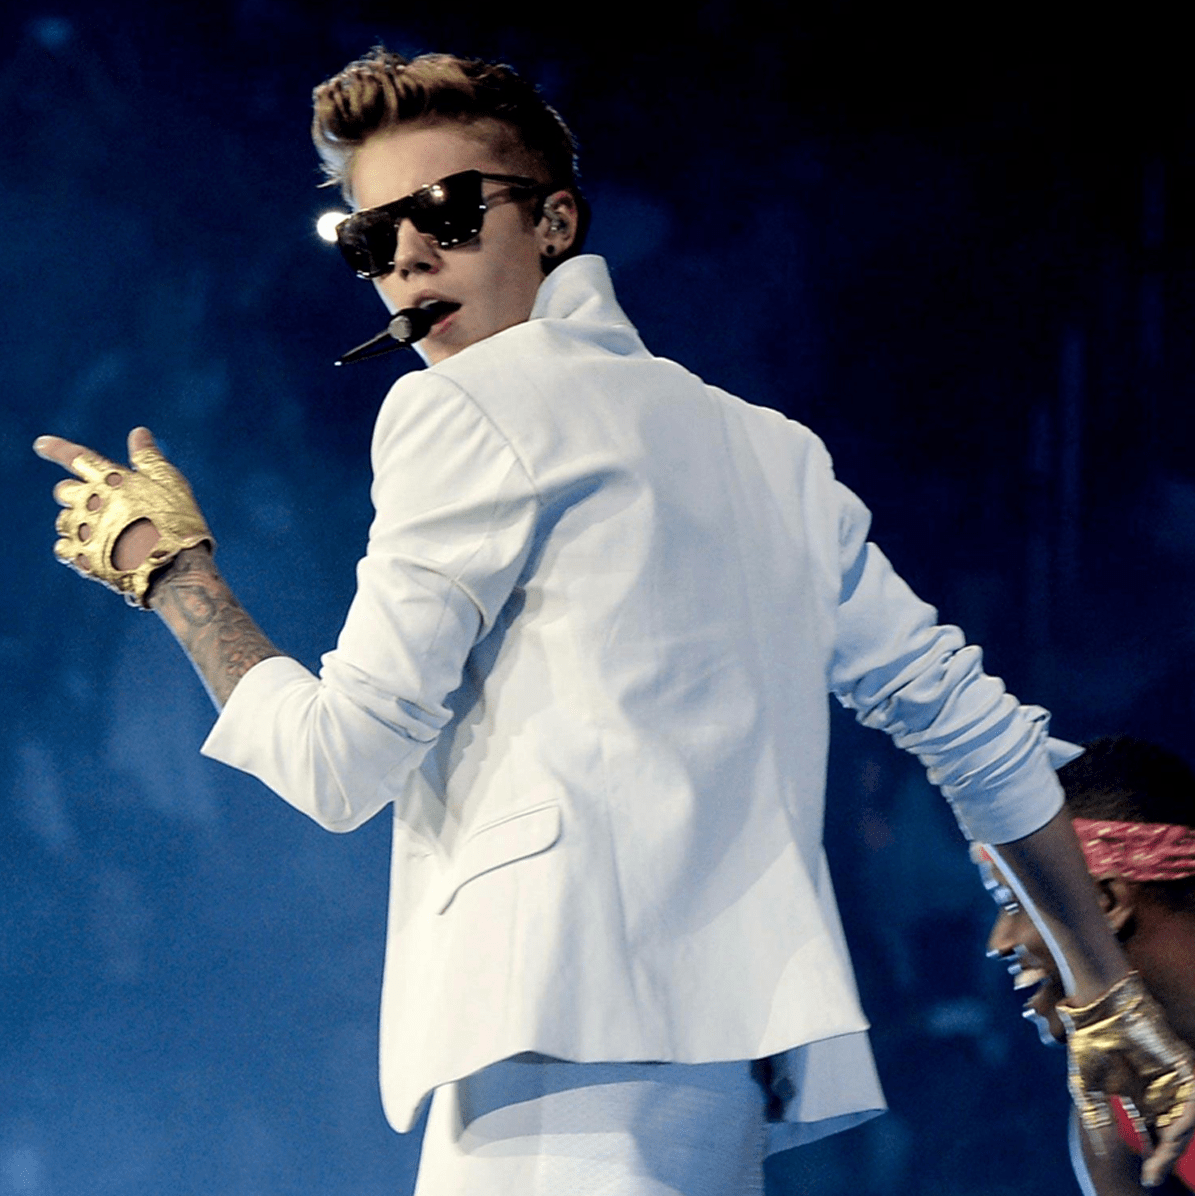 Justin Bieber in concert on Believe world tour